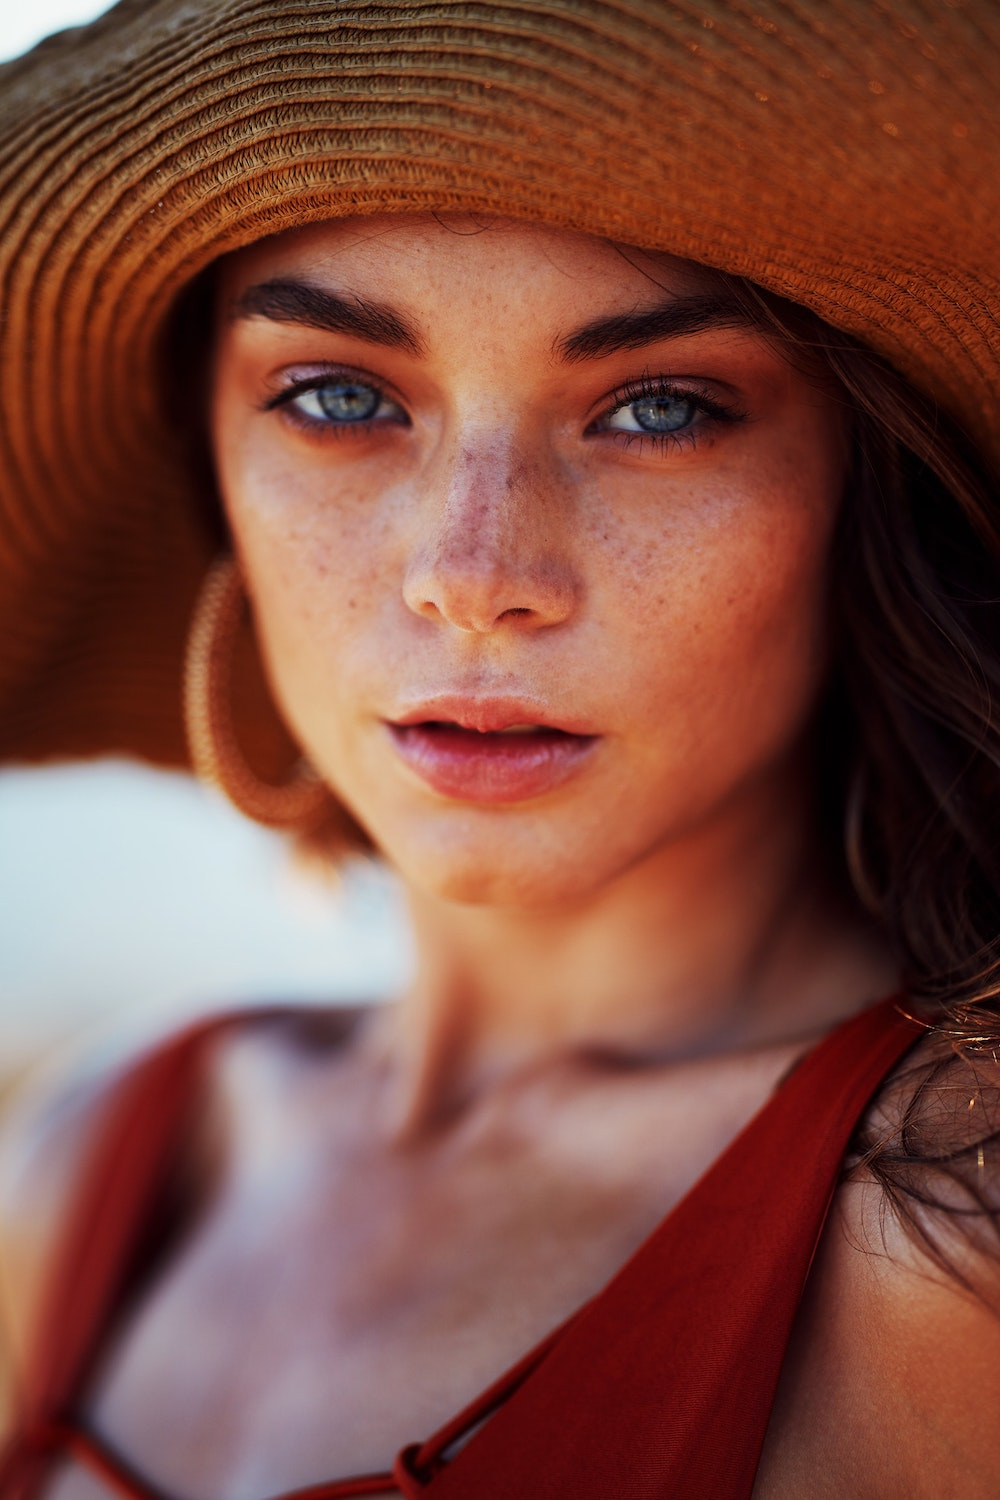 Battling Sunspots Through Skincare And Laser Therapy - One of the most common signs of aging skin is pigmentation - often caused by exposure to the UV rays.